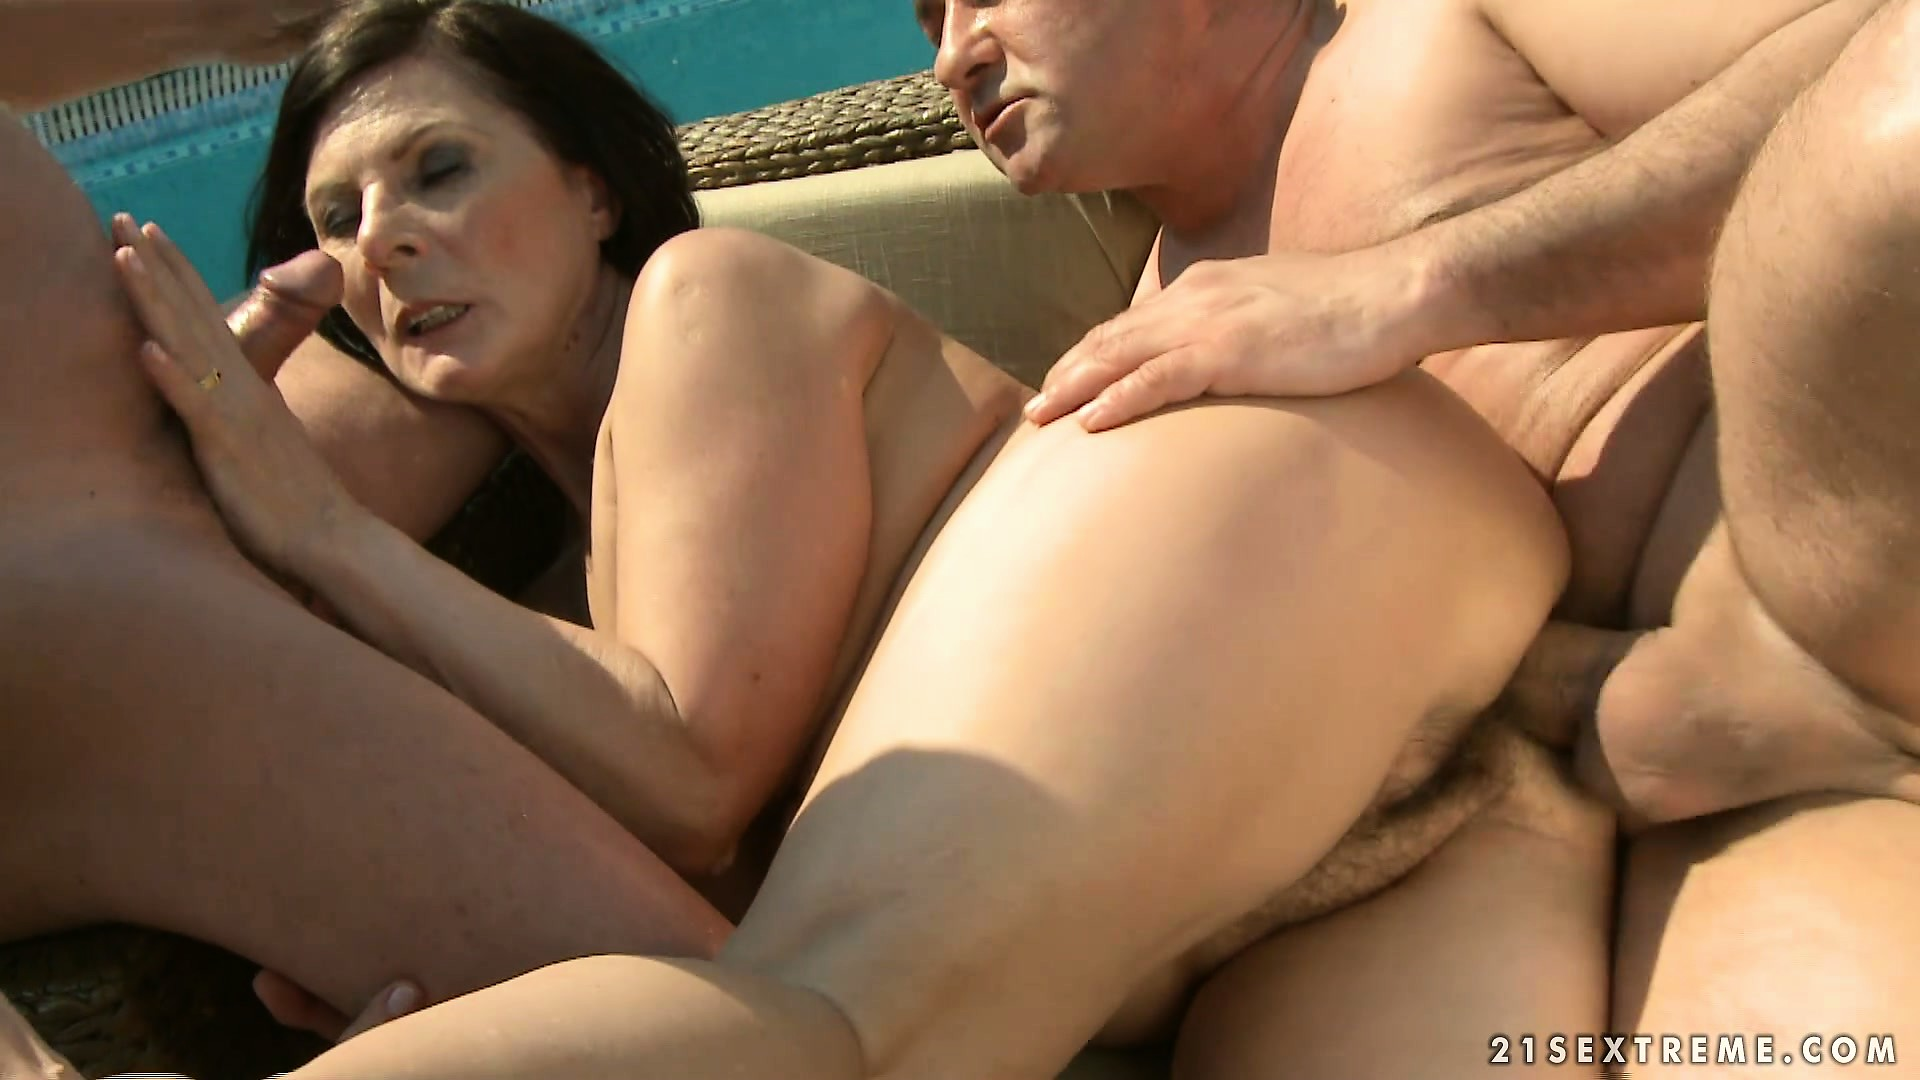 Porn Tube of She Blows Another Younger Dude In An Outside Three Way With Grandpa